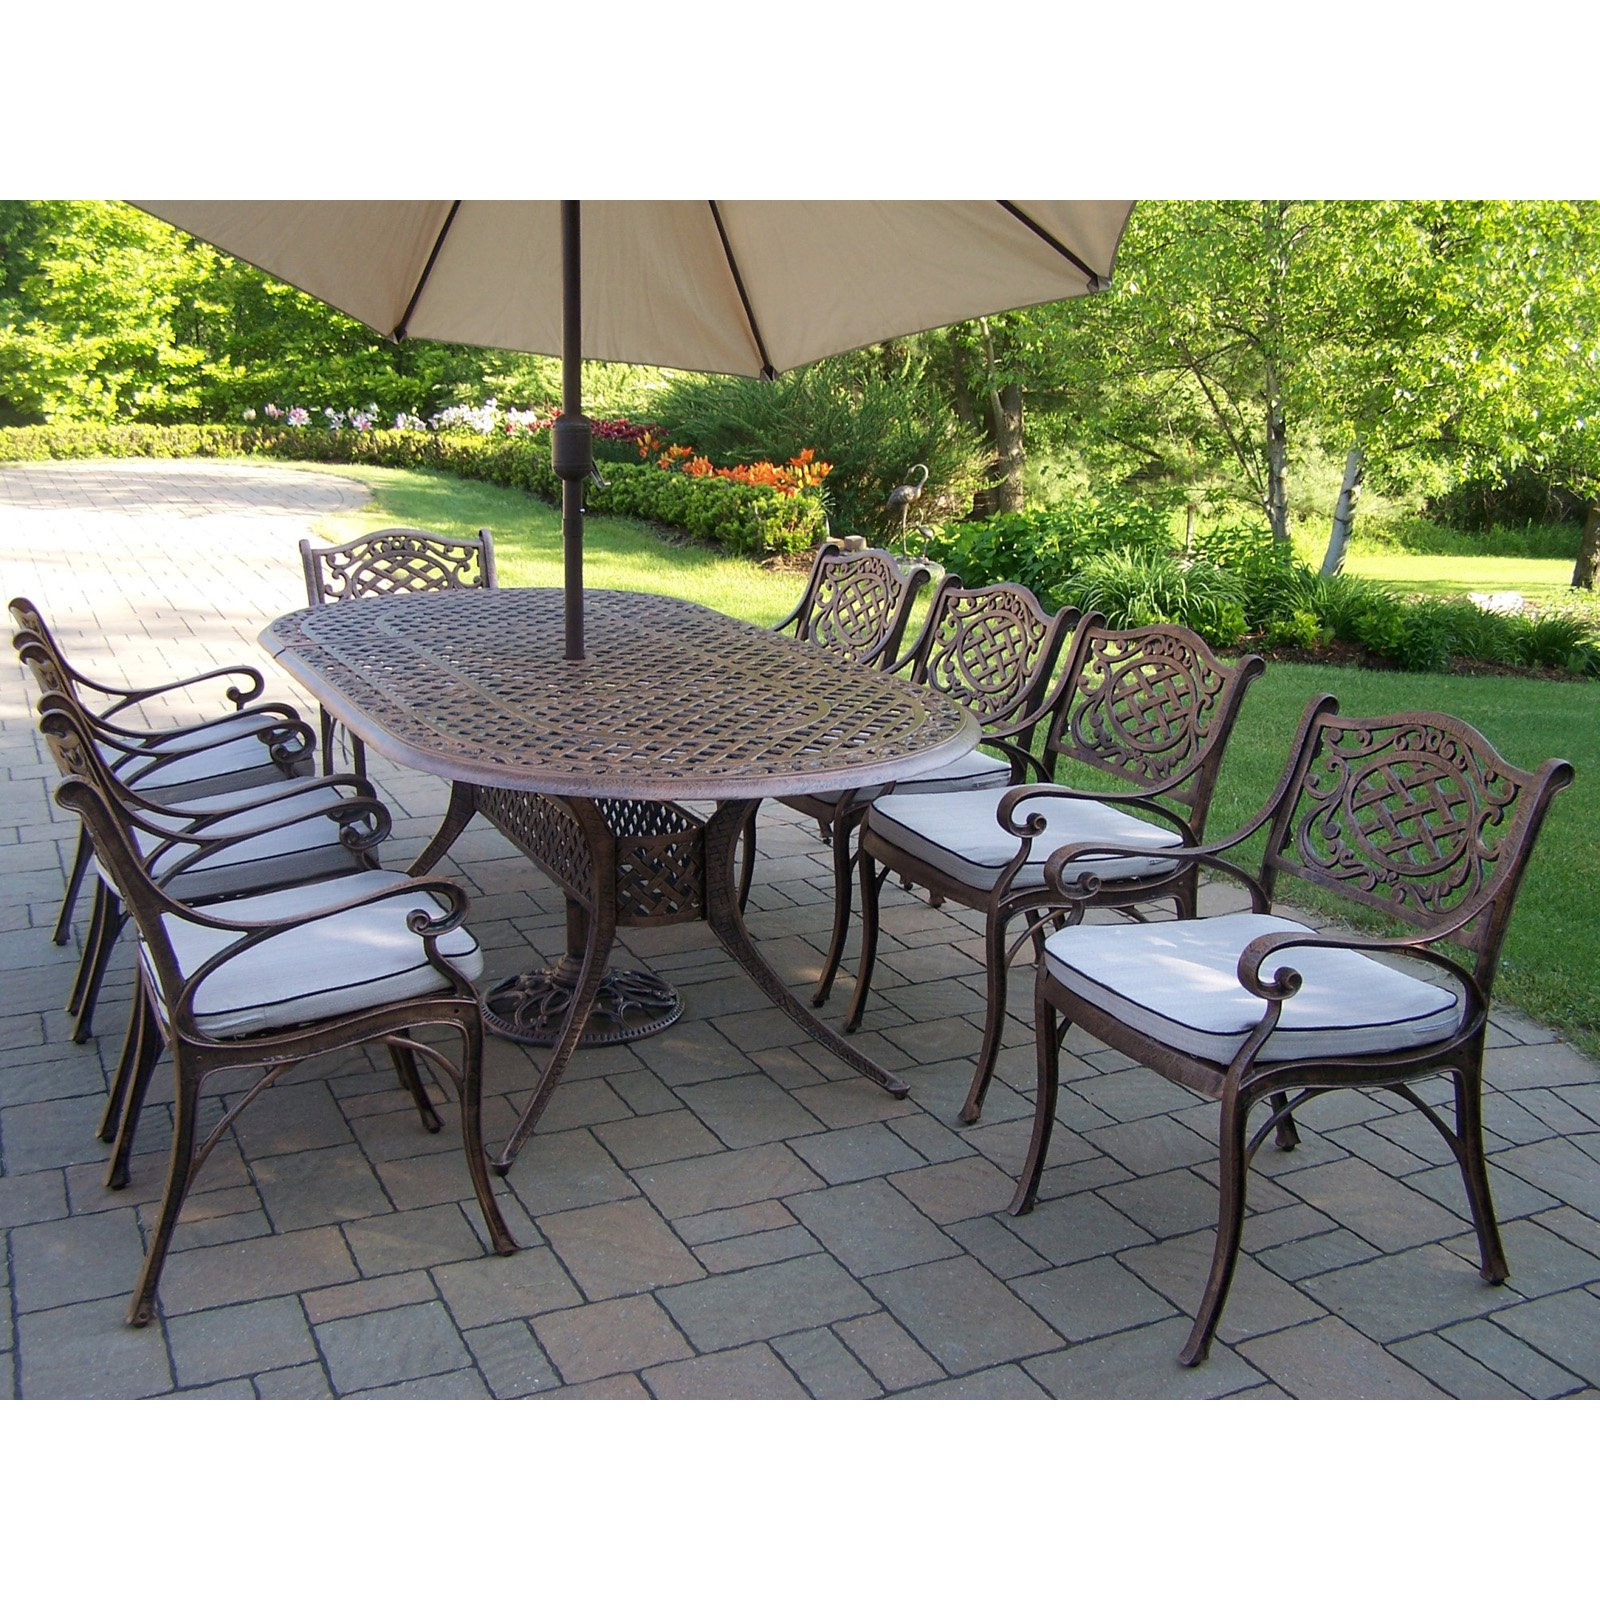 Oakland Living Mississippi Cast 82 x 42 in. Oval Patio Dining Room Set with Chairs & Tilting Umbrella with... by Oakland Living Corp